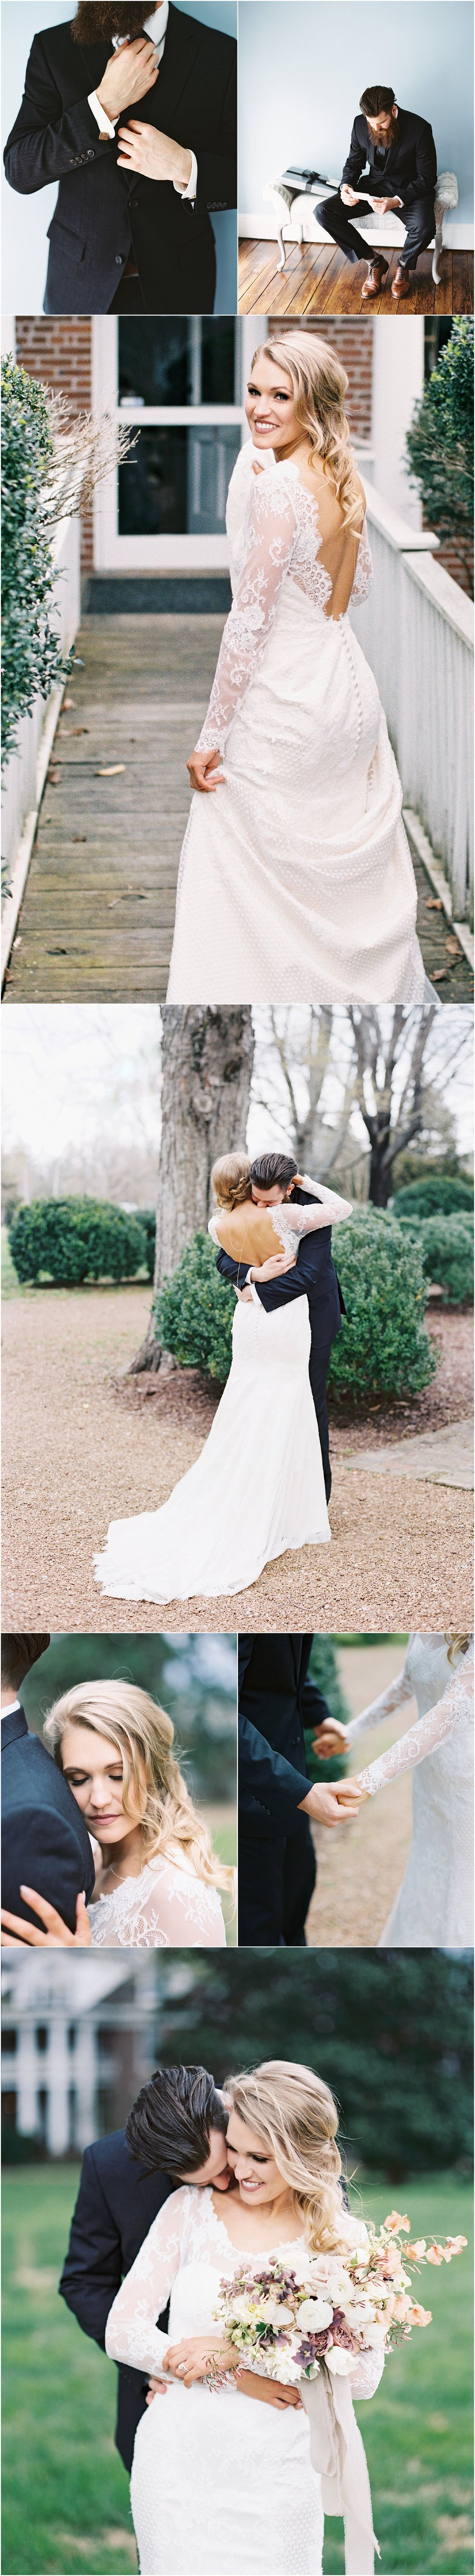 Asheville wedding photographer Sarah Ingram